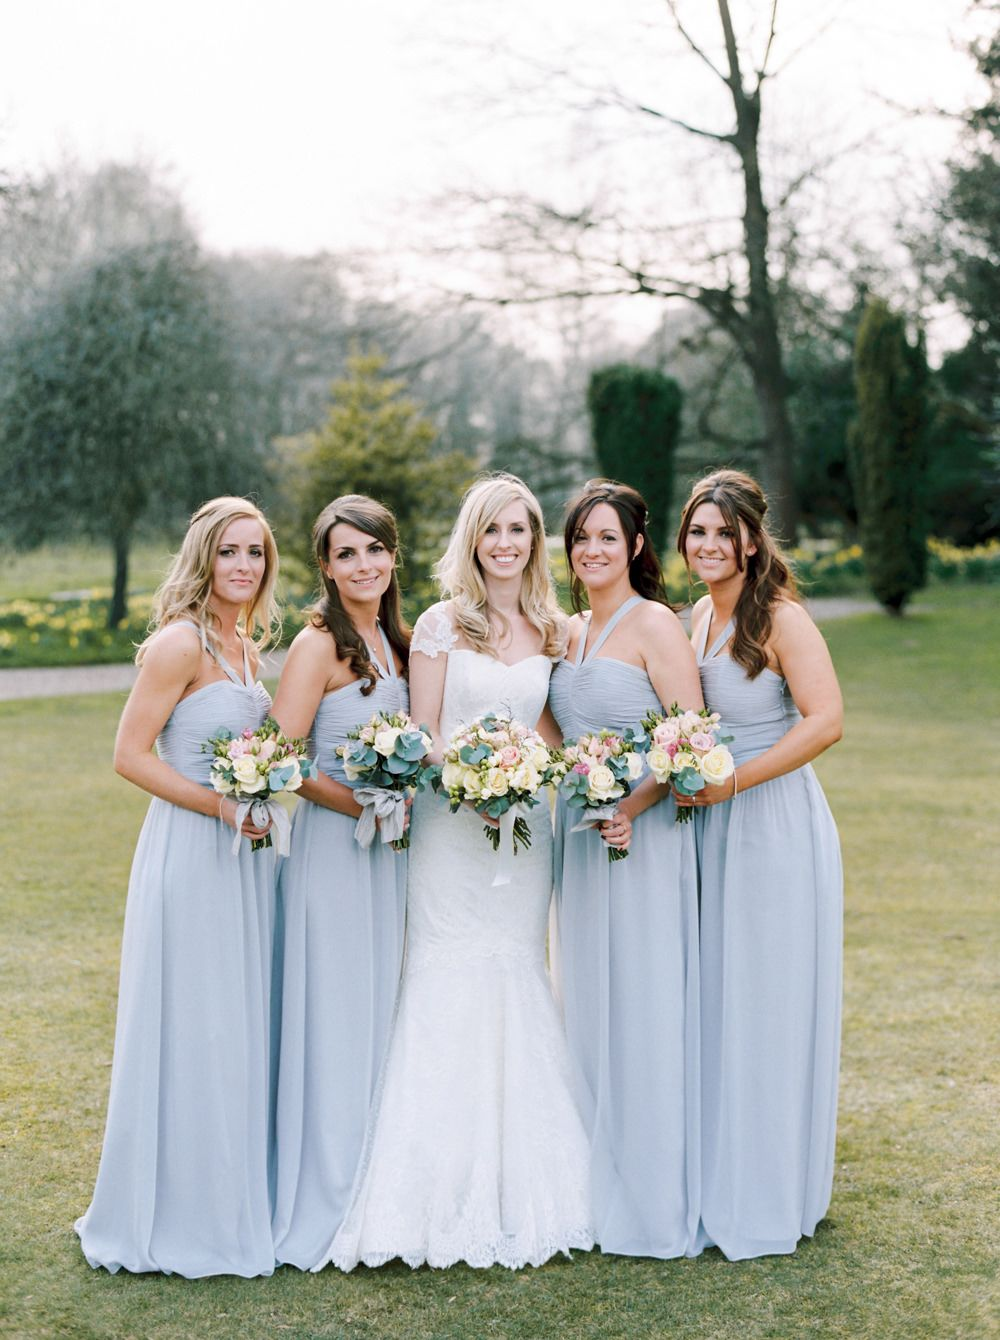 Dominique by sassi holford and dove grey ted baker bridesmaids dominique by sassi holford and dove grey ted baker bridesmaids dresses for a classic iscoyd park wedding ombrellifo Choice Image